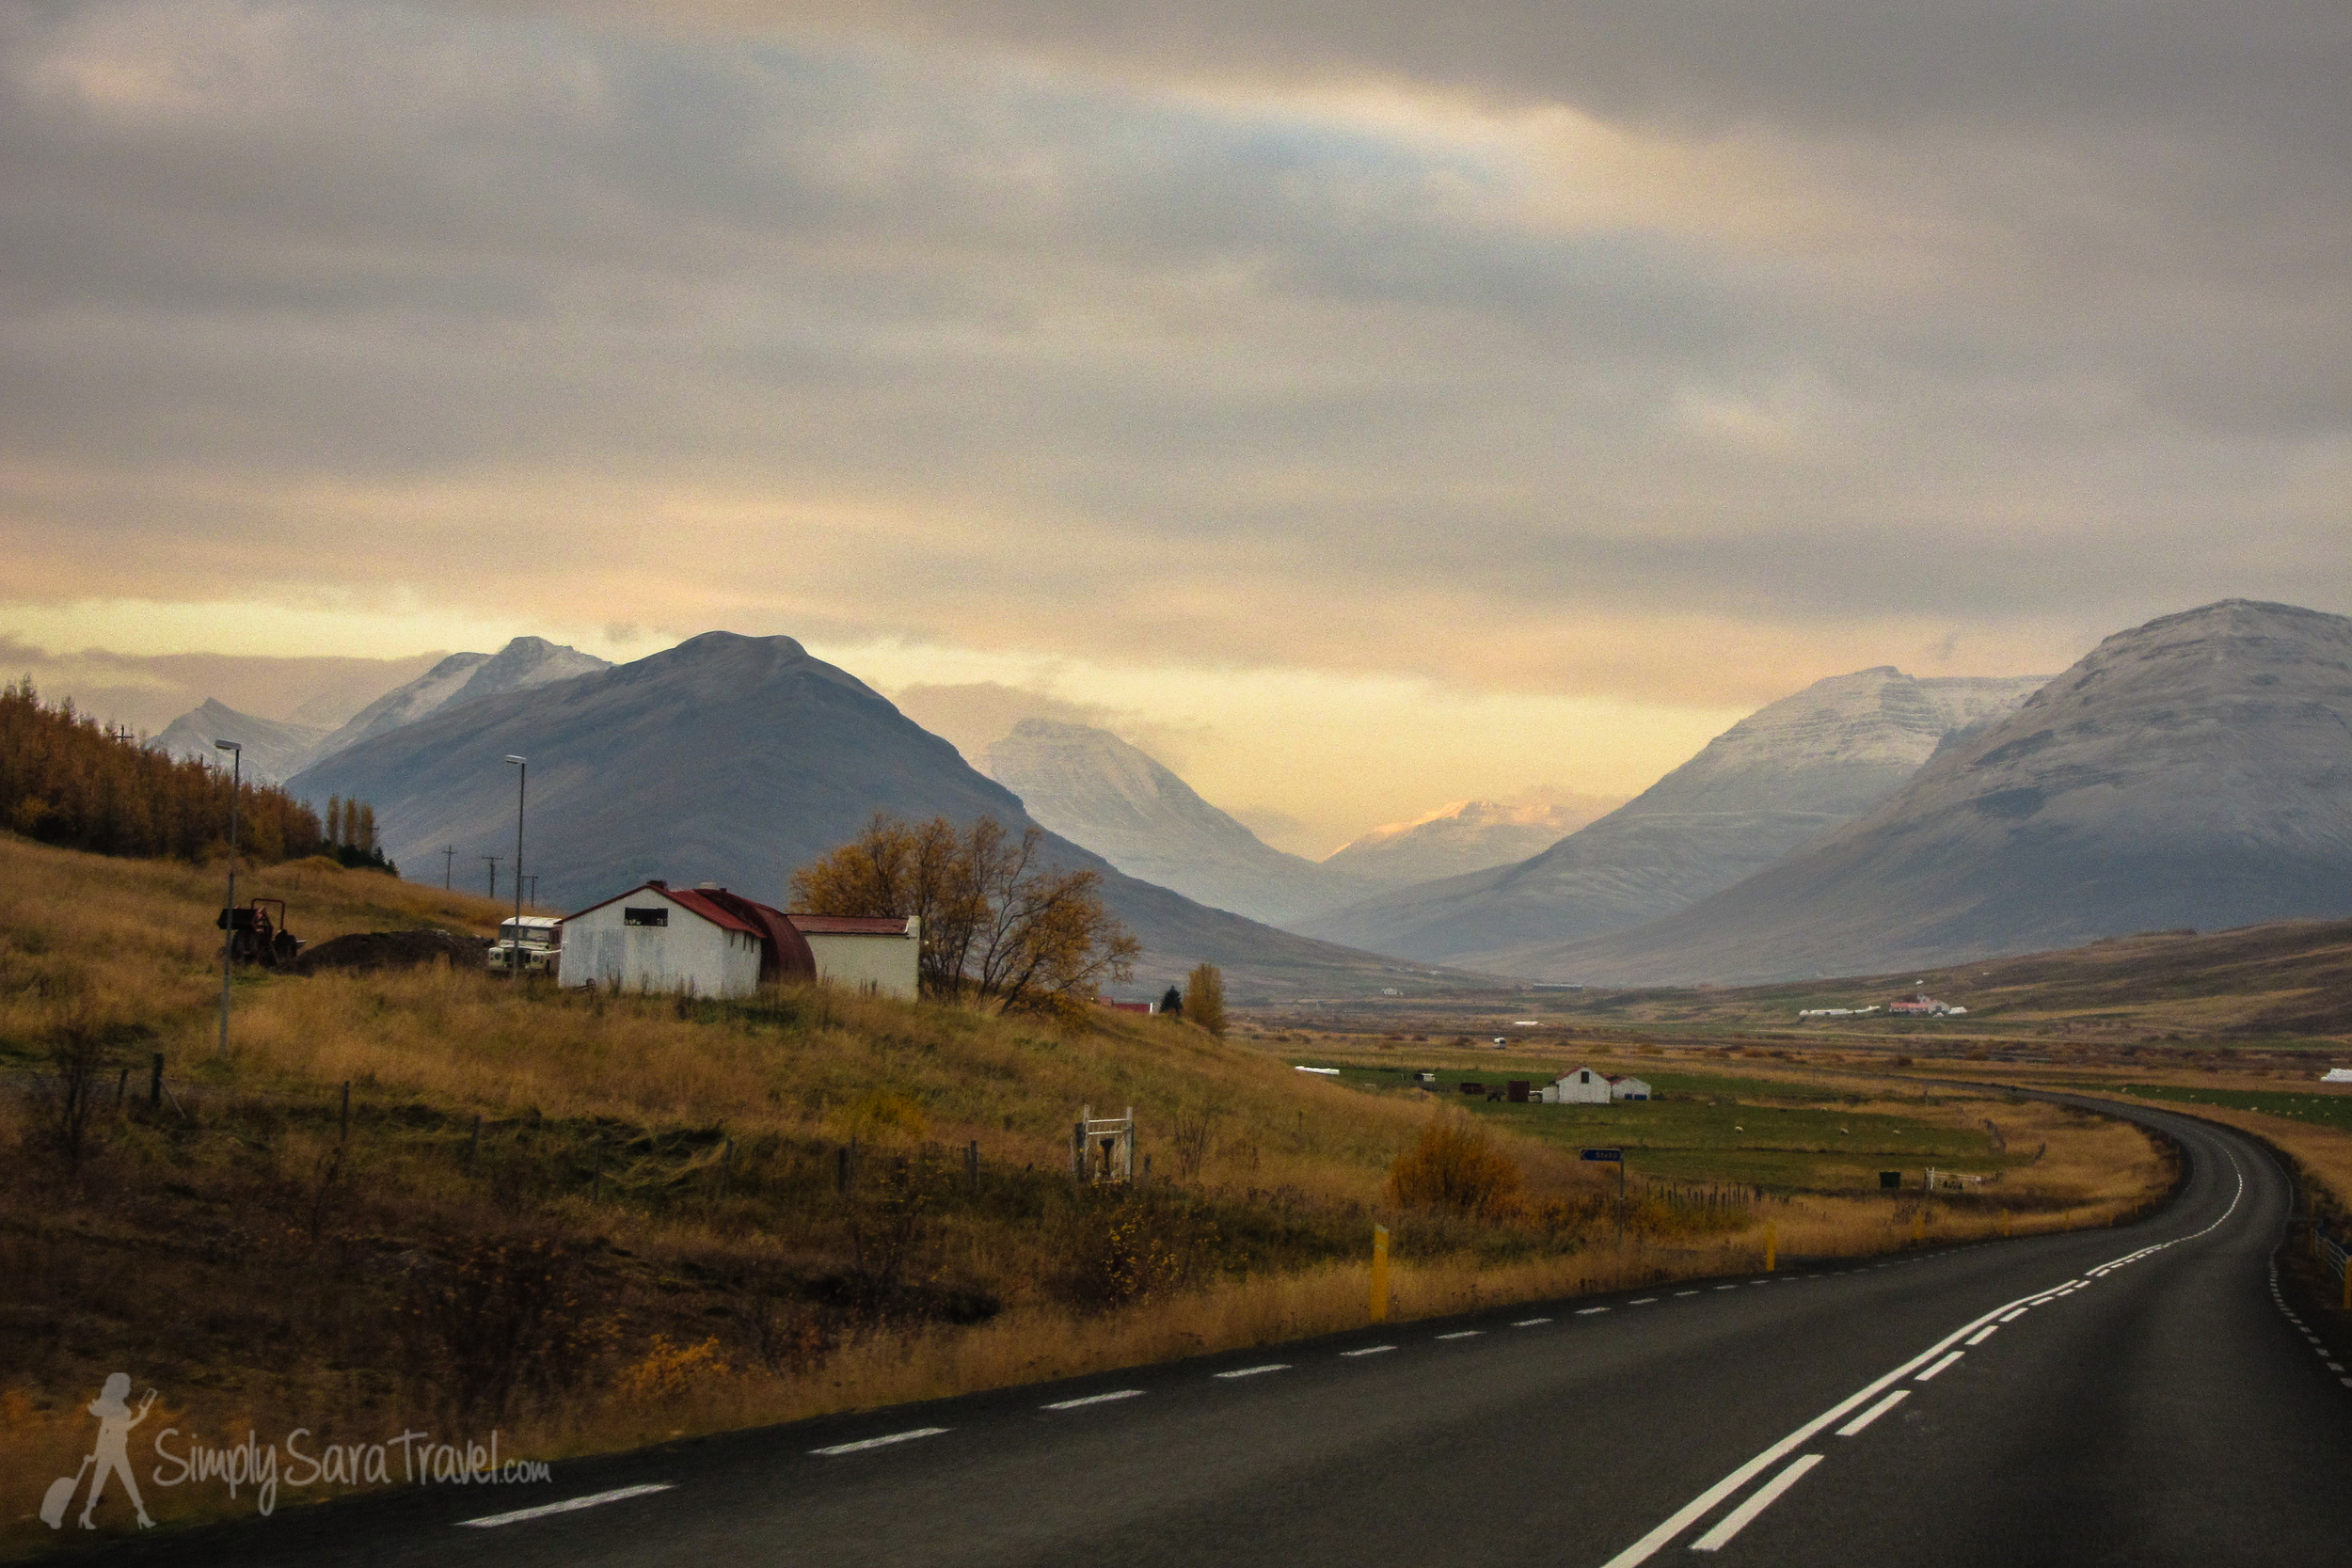 On our drive back the mountains were lit up so majestically on the ride west from Akureyri along the Ring Road.